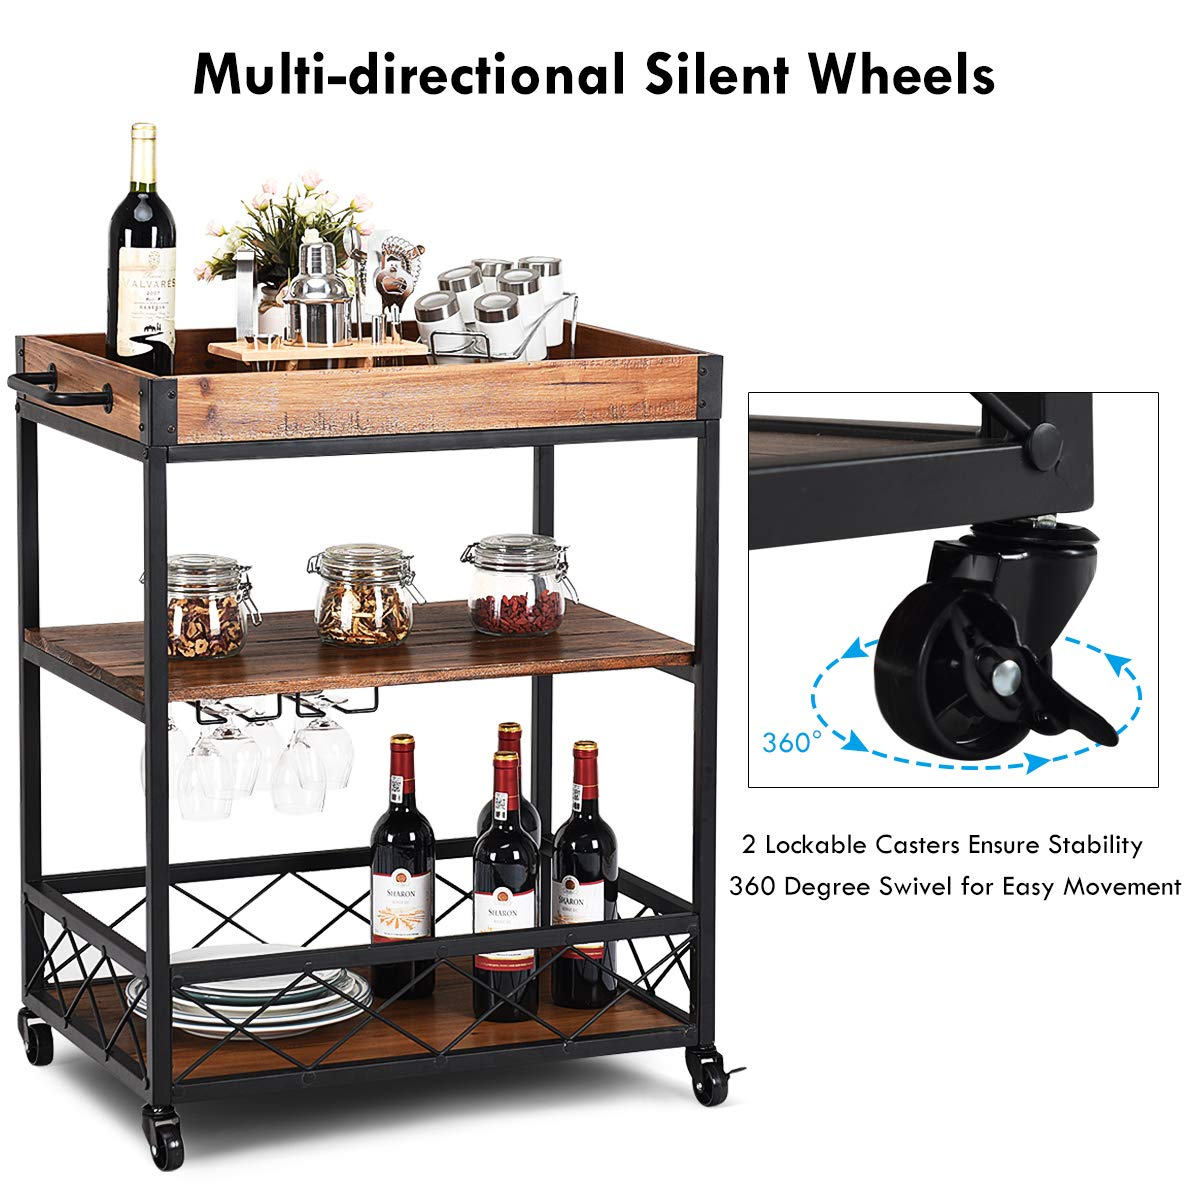 Giantex Kitchen Trolley Cart Island Rolling Serving Carts Utility Cart 3 Tier Storage Shelf with Glass Holde, Handle Racks, Lockable Caster Wheels Kitchen Carts Islands w/Removable Wood Box Container by Giantex (Image #6)